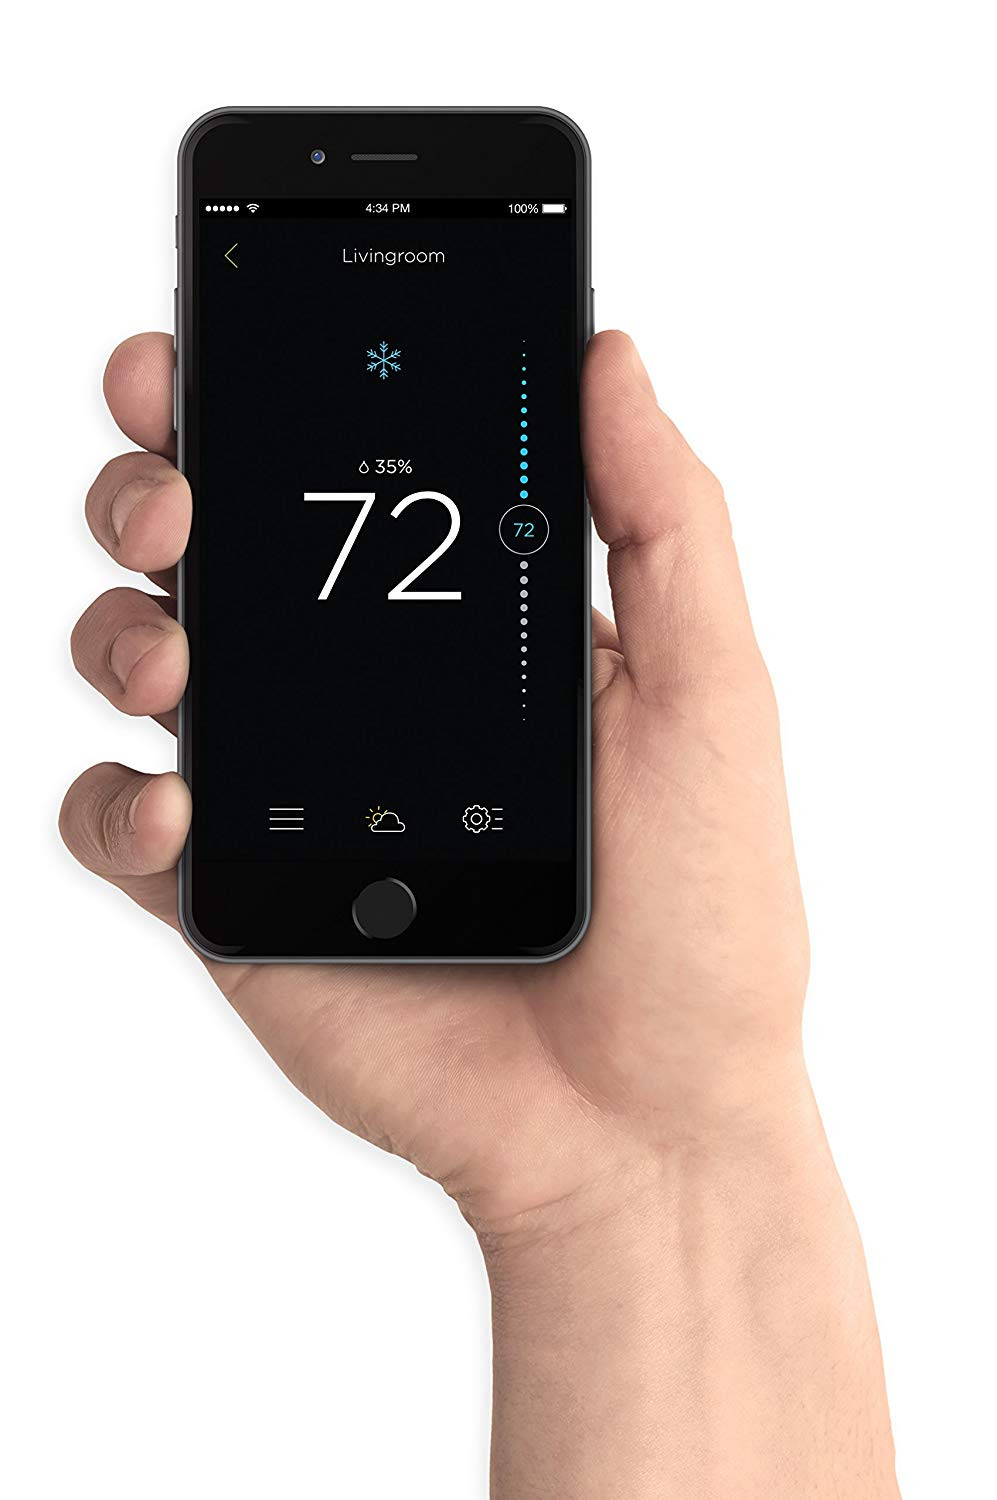 Control your Ecobee from your phone